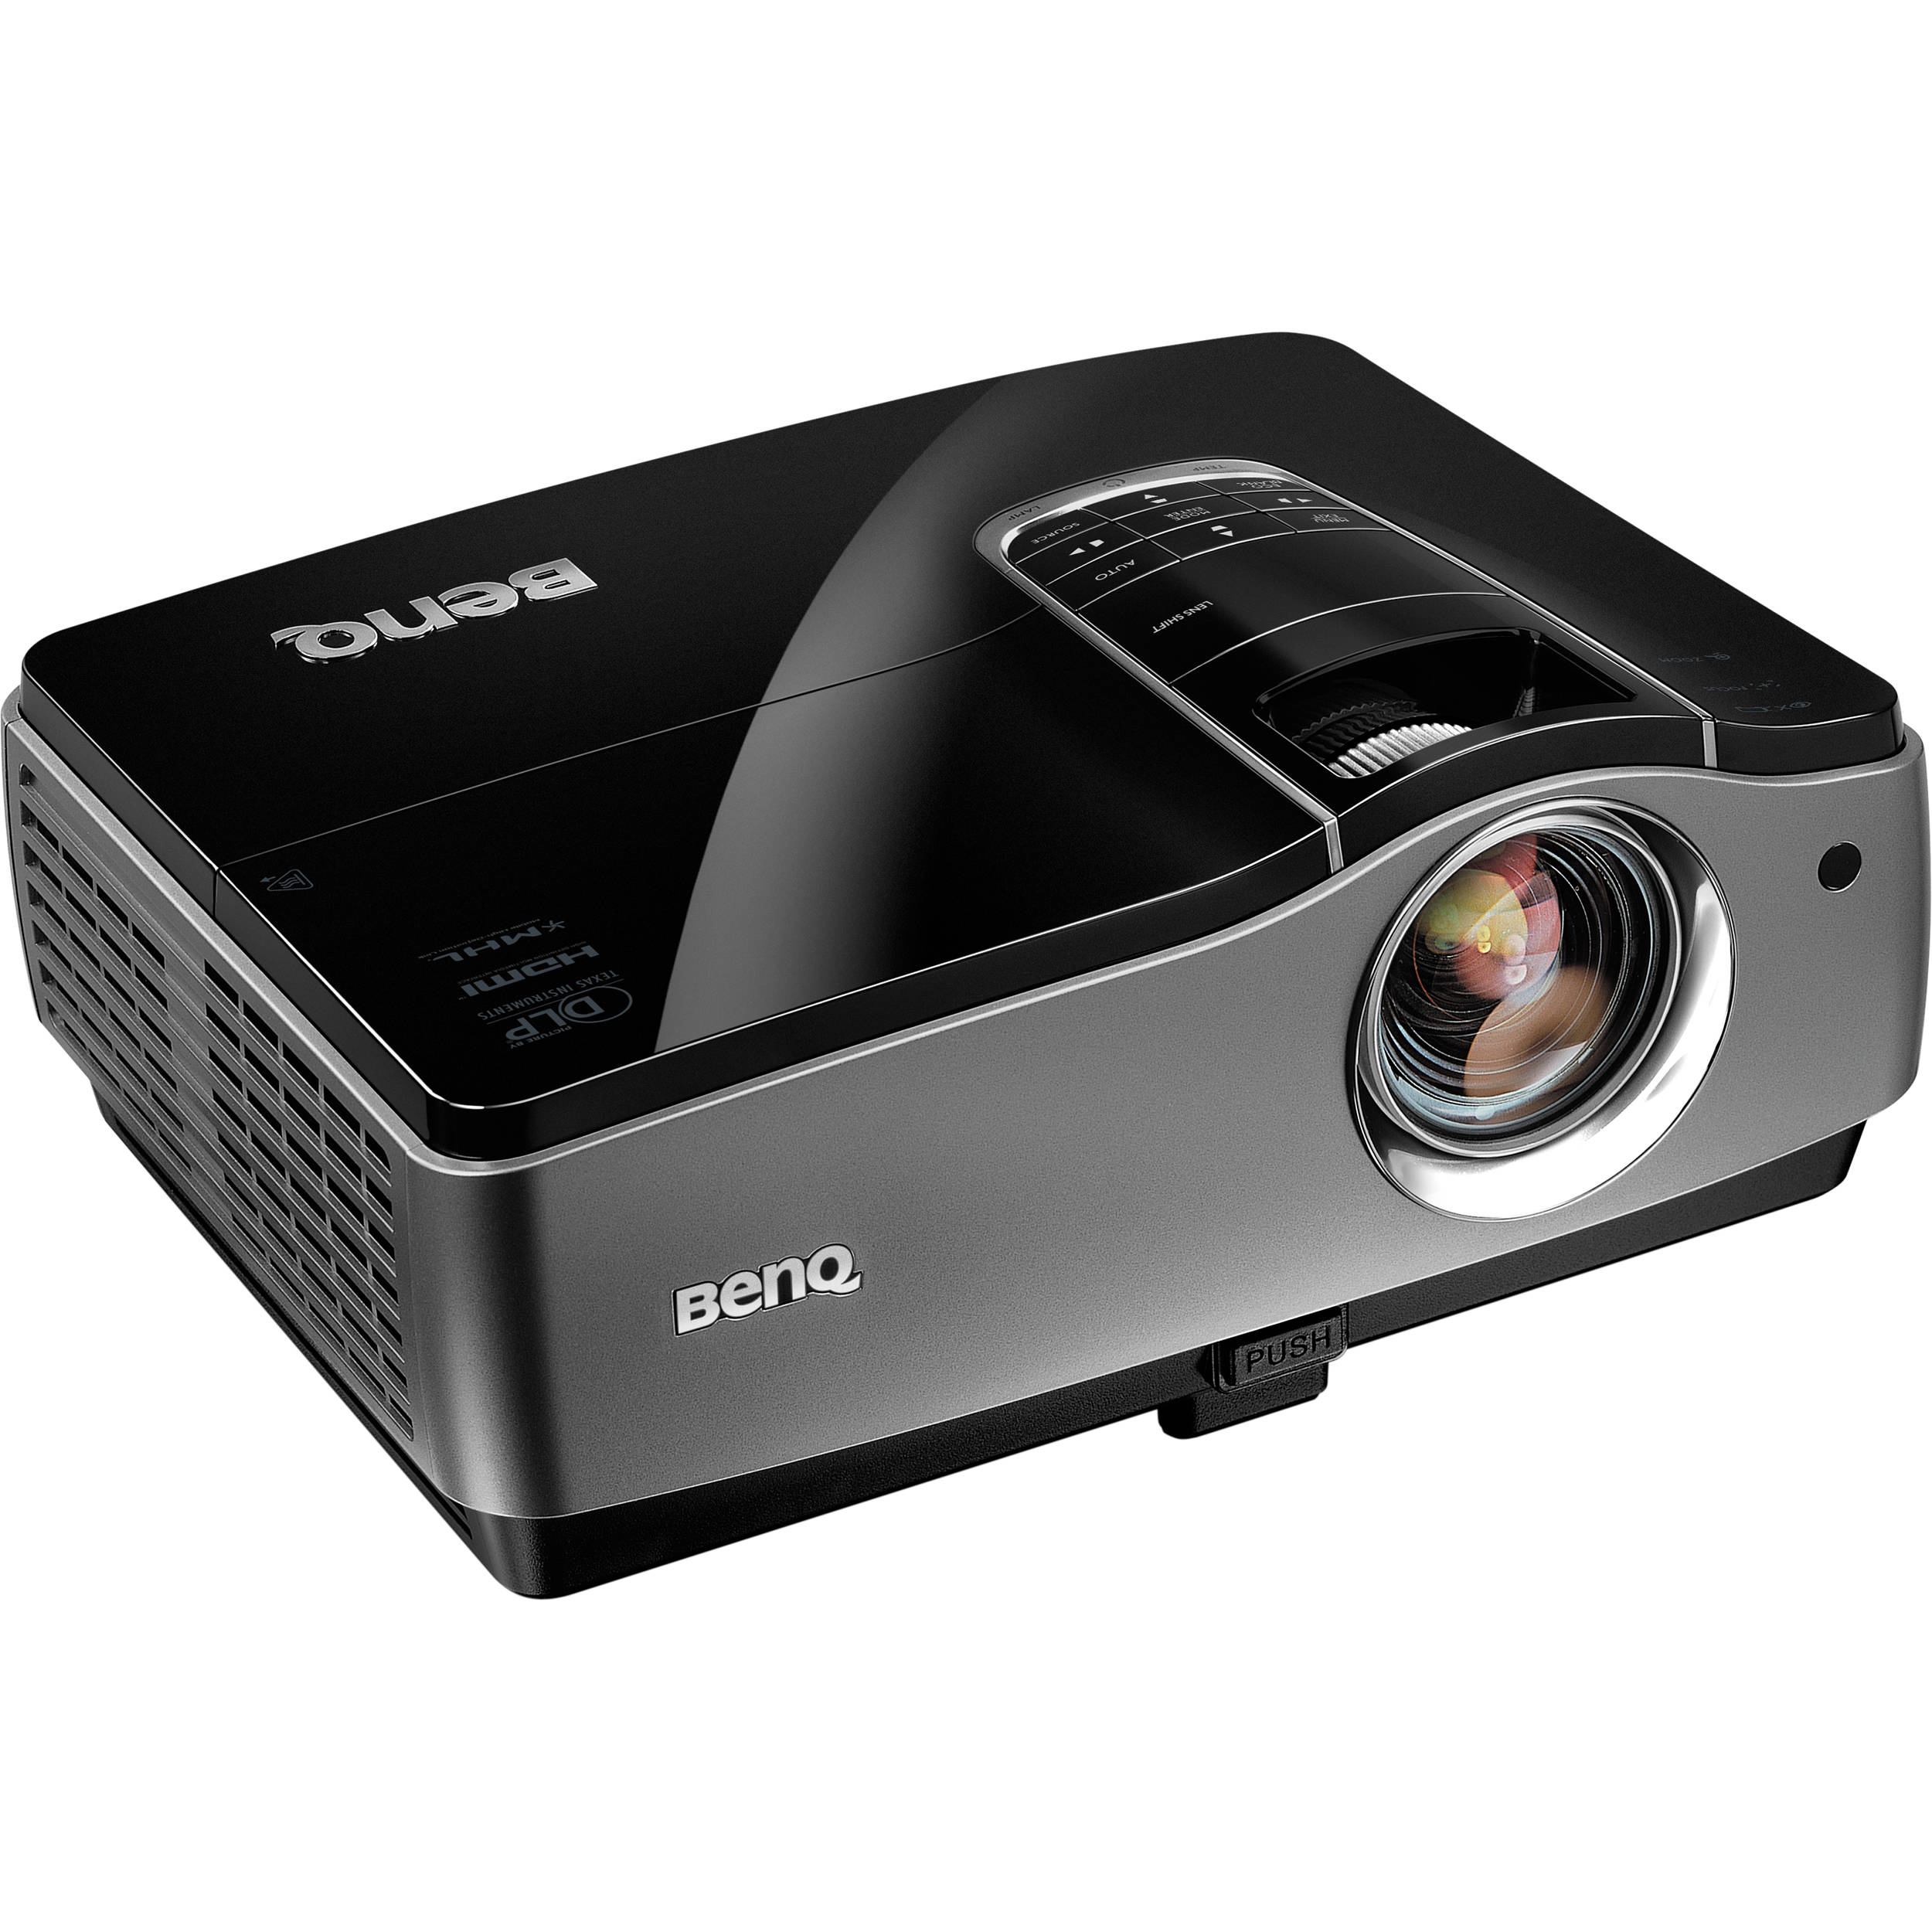 BENQ 5000S WINDOWS 10 DRIVERS DOWNLOAD